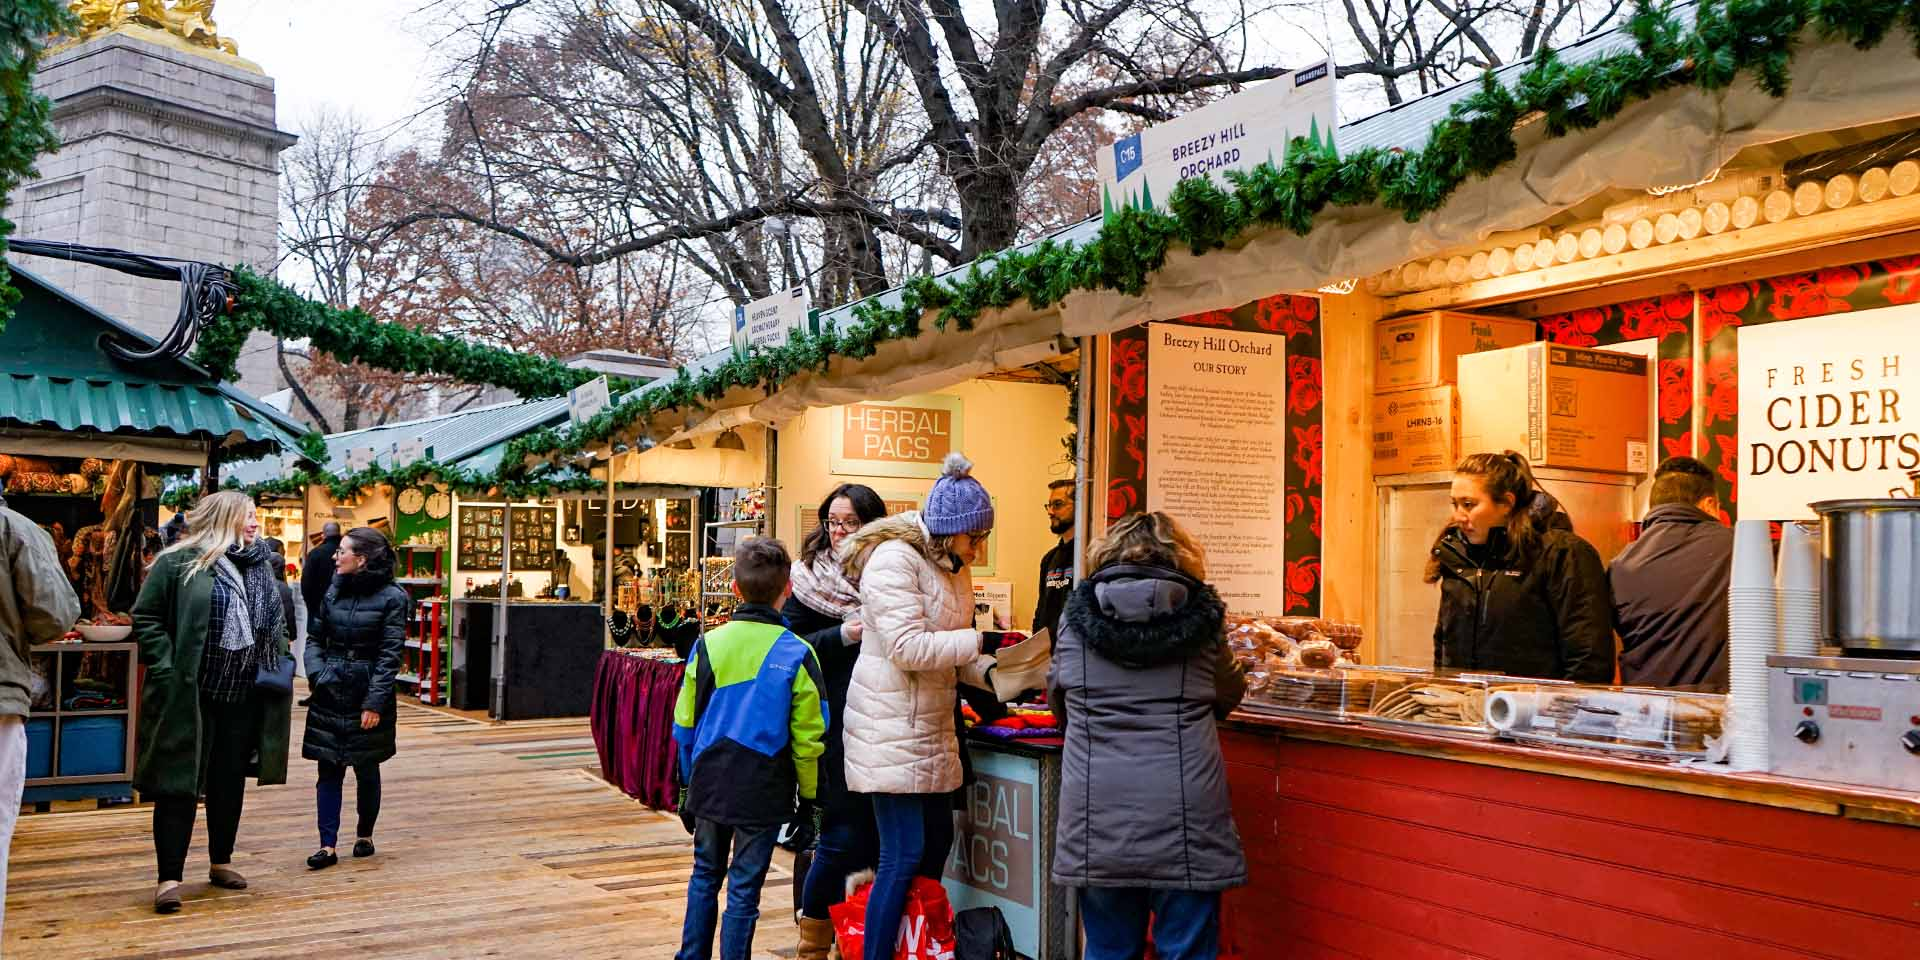 Columbus Circle Christmas Market 2020 Hours ▷ Christmas Markets in NYC | New York's Best Holiday Markets 2020